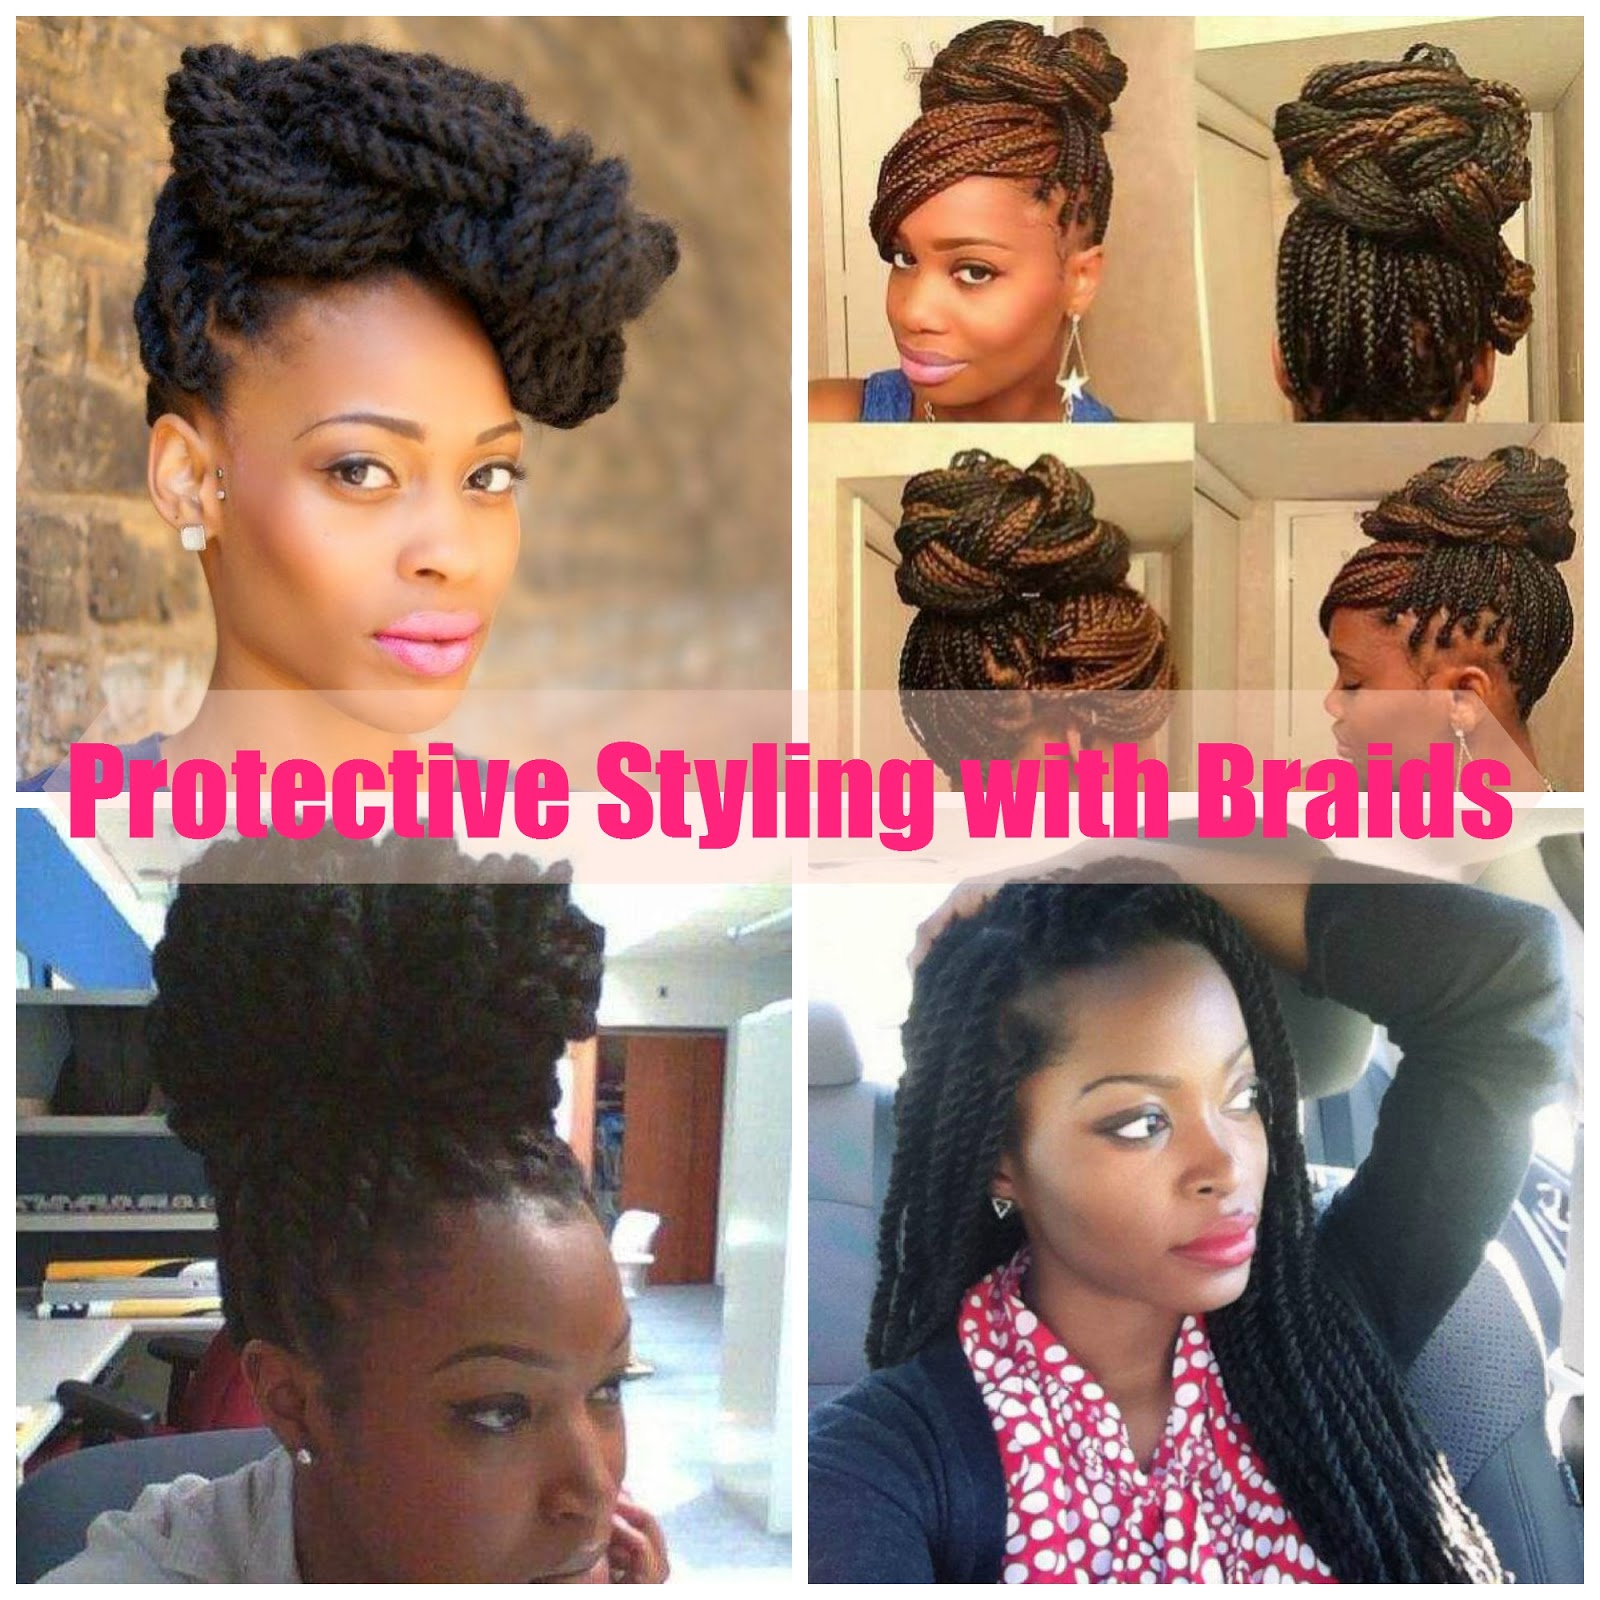 Protective Styling Natural Hair Are Your Options Limited